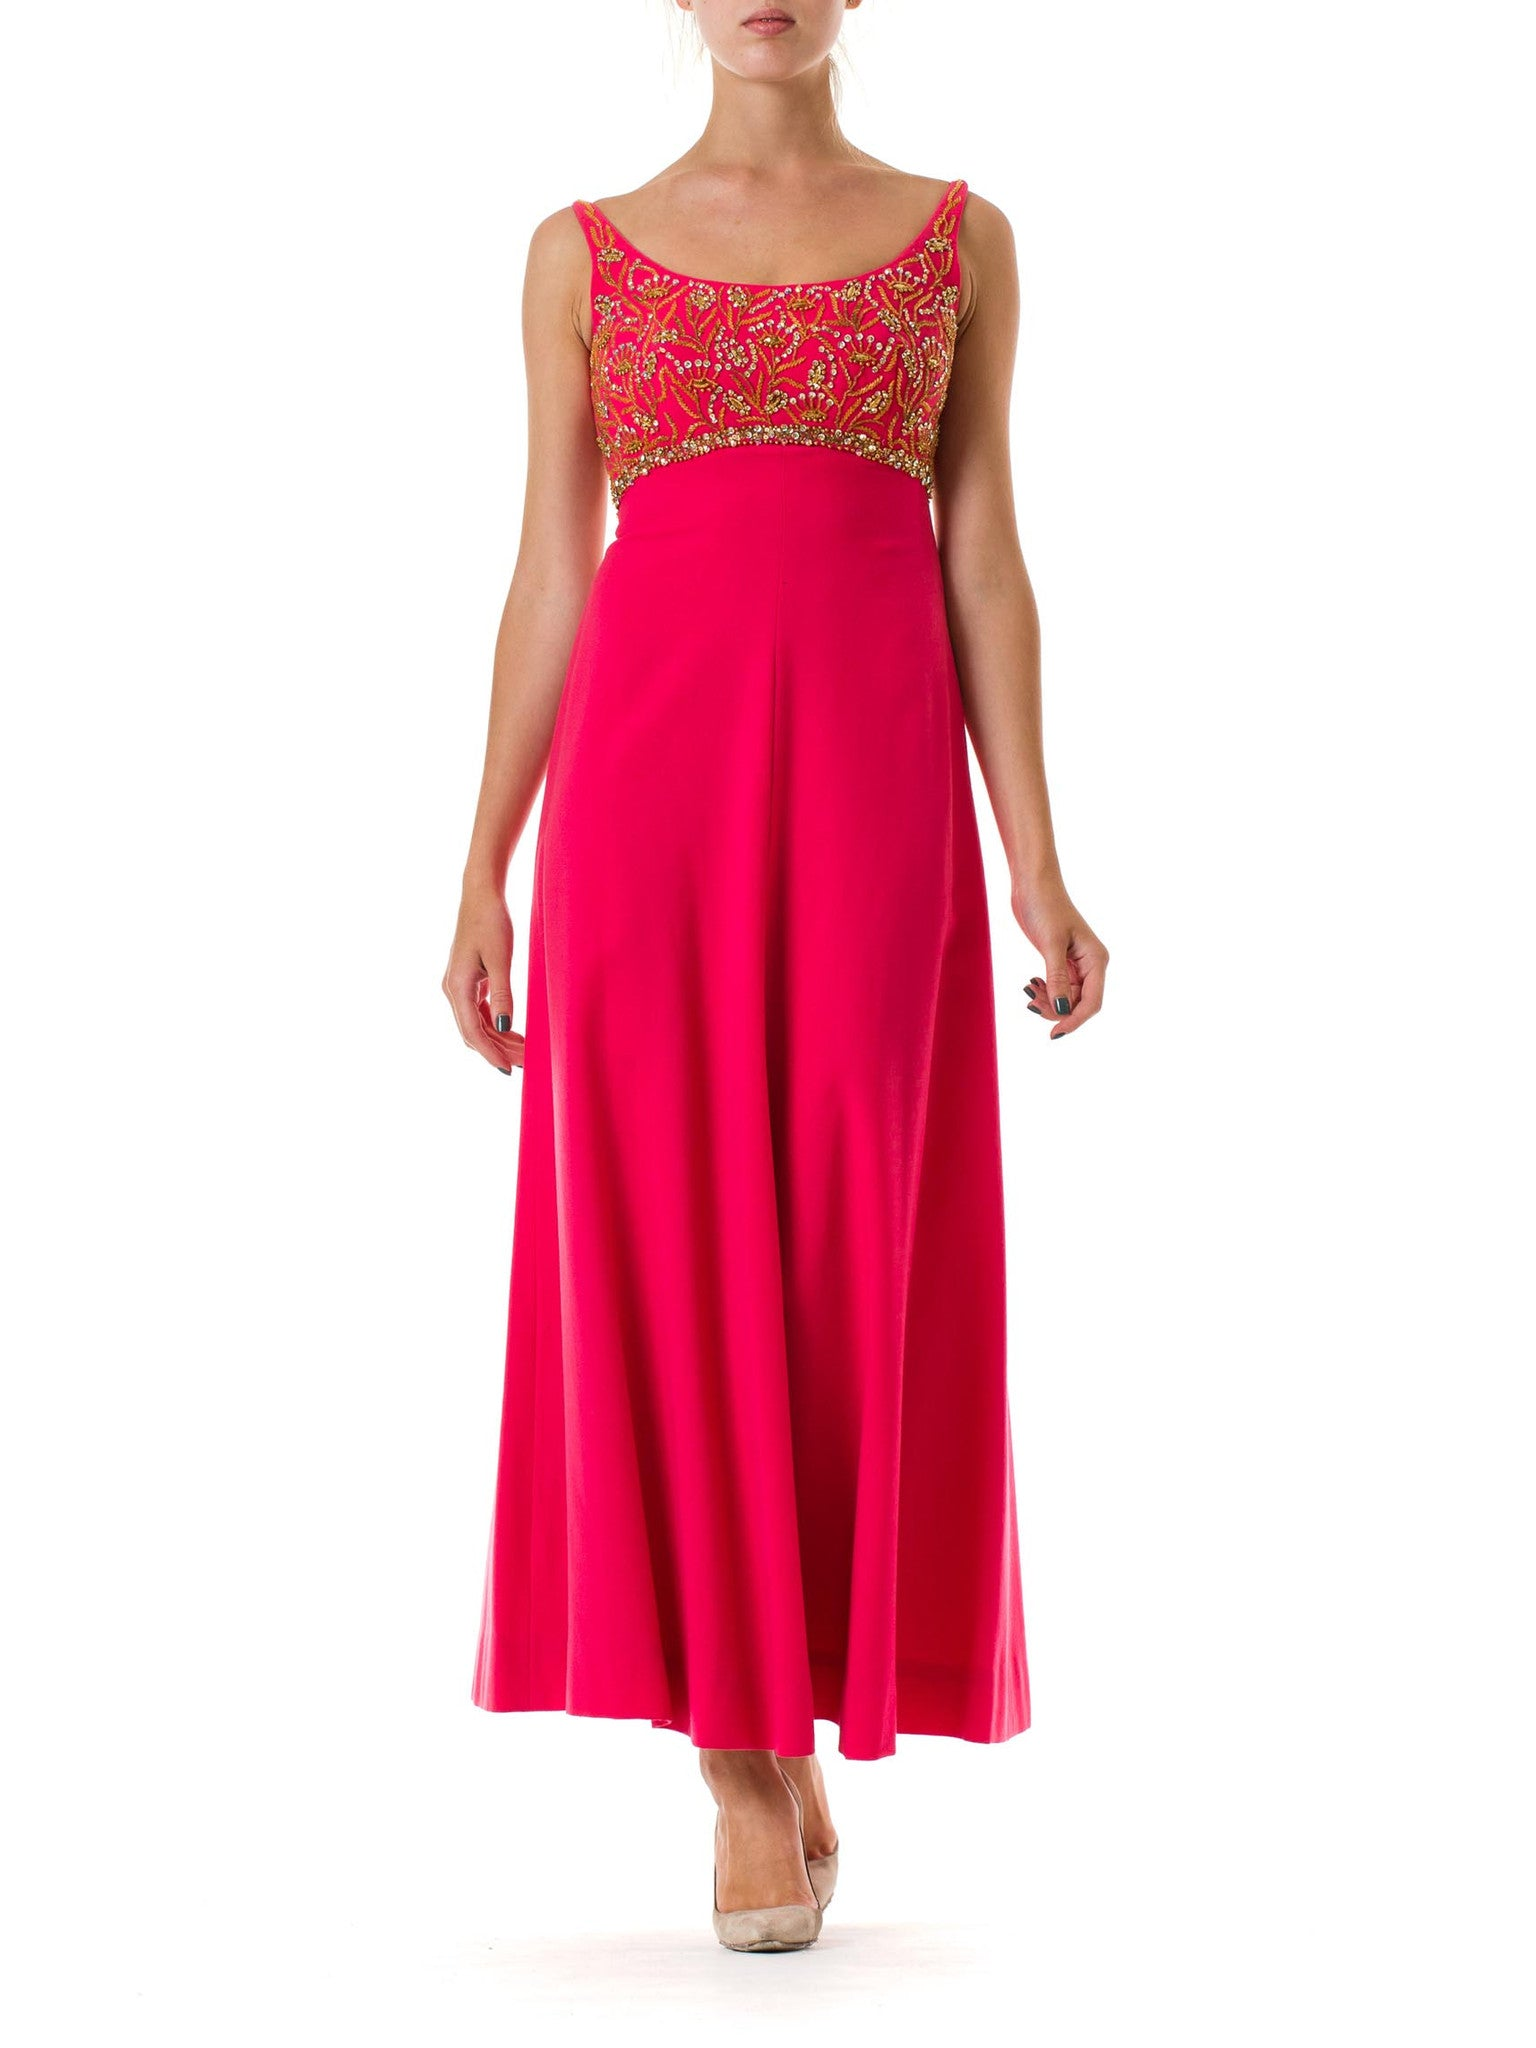 1950s Bright Pink Beaded Gown